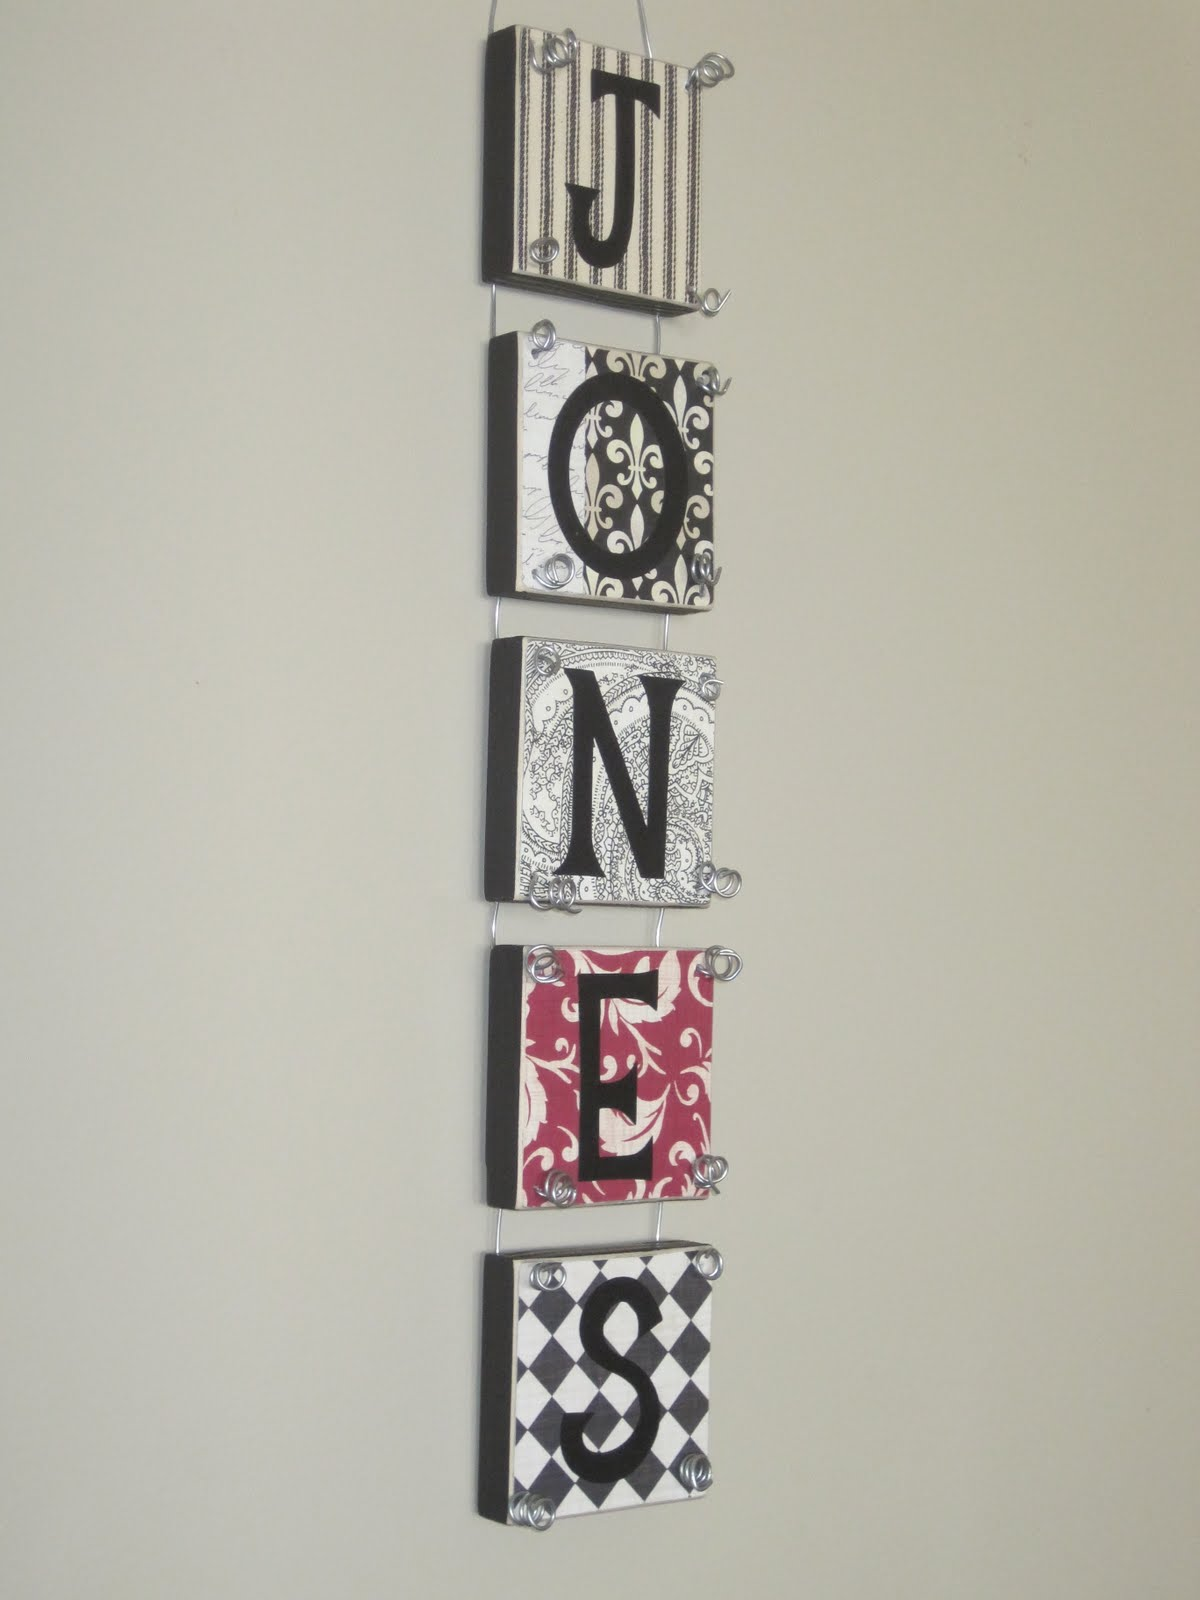 ... Design: Personalized Wall Hanging Wood Block Letters, Words, & Names